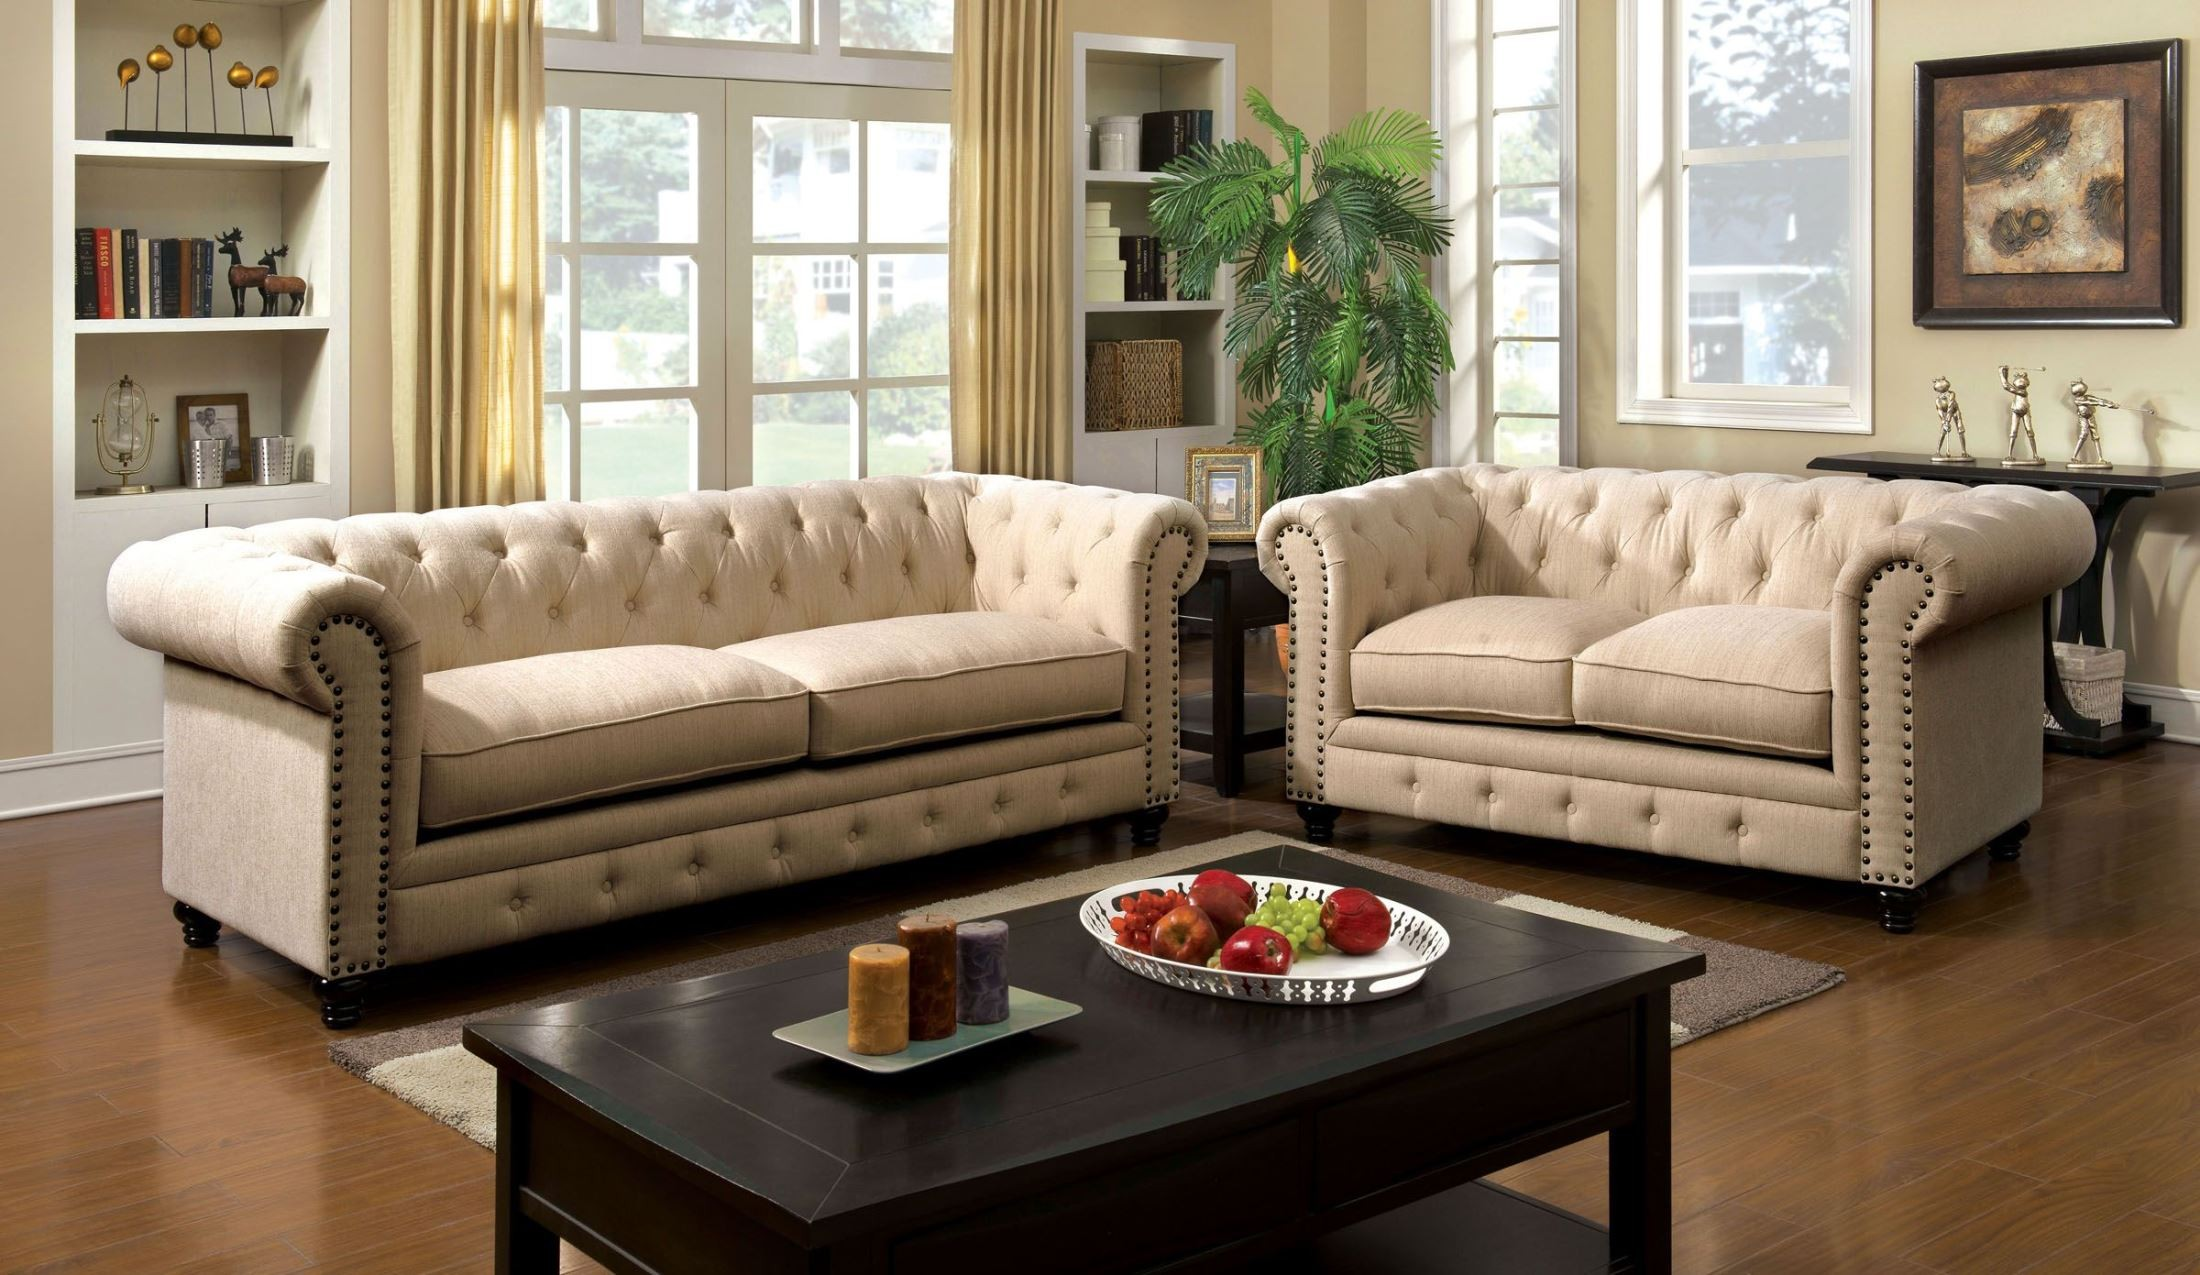 Stanford Ivory Fabric Living Room Set From Furniture Of America CM6269IV SF